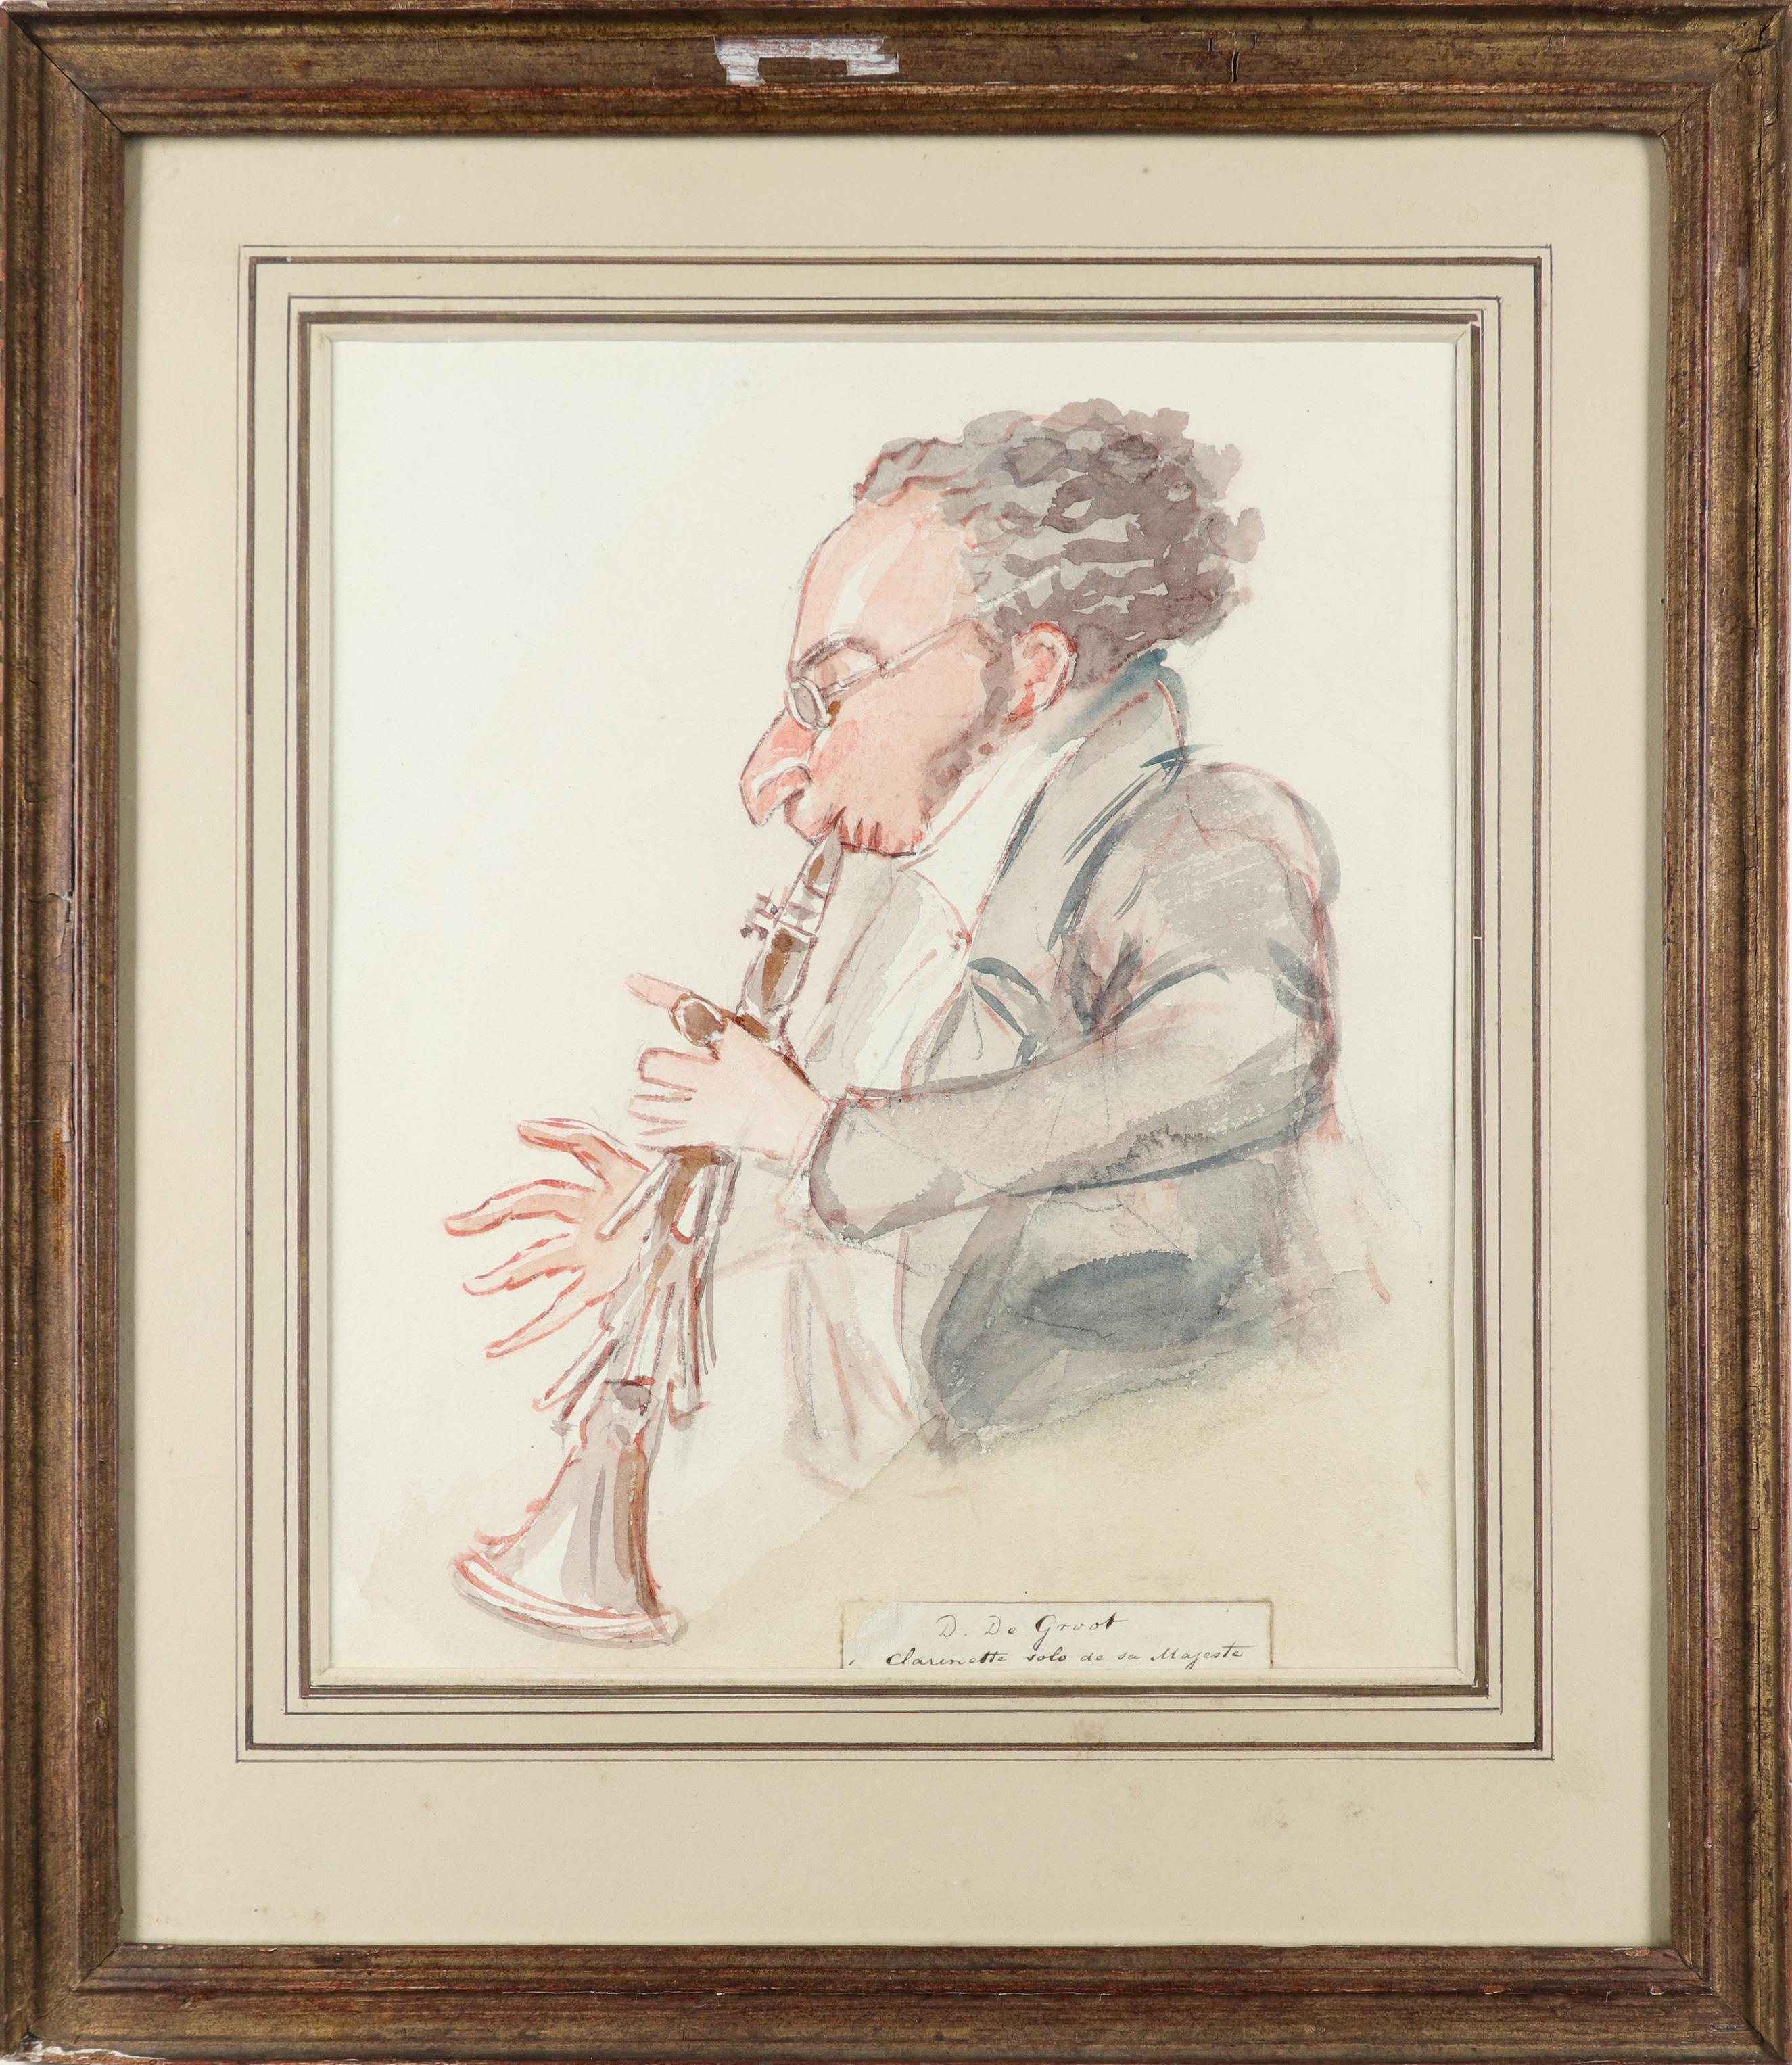 Alfred Edward Chalon RA (Swiss 1780-1860) David de Groot playing the clarinet Pencil, pen and ink, - Image 2 of 3